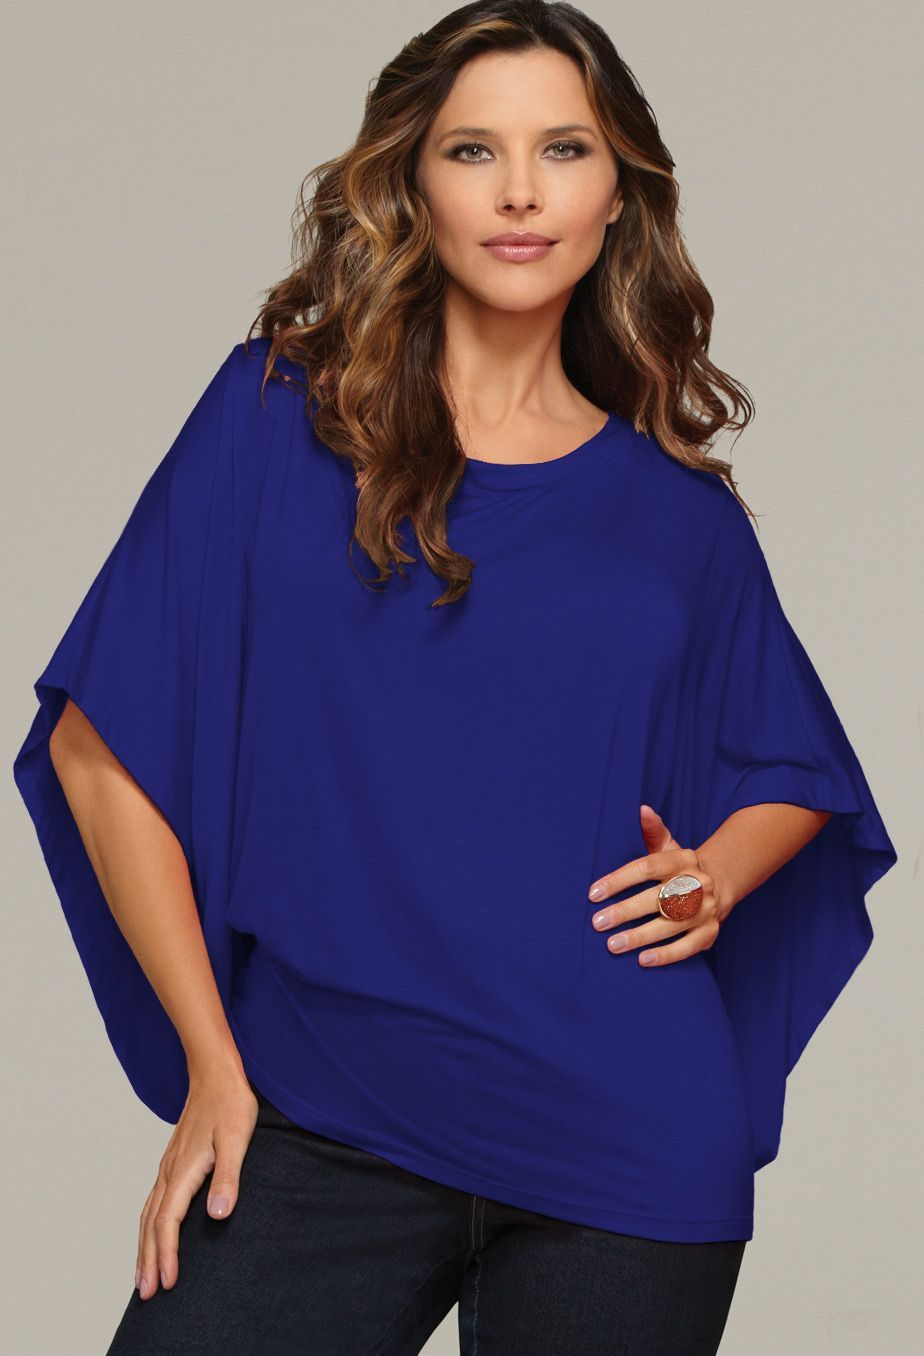 Plus Size Solid Kimono Sleeve Top in Royal Blue $24.99 ...